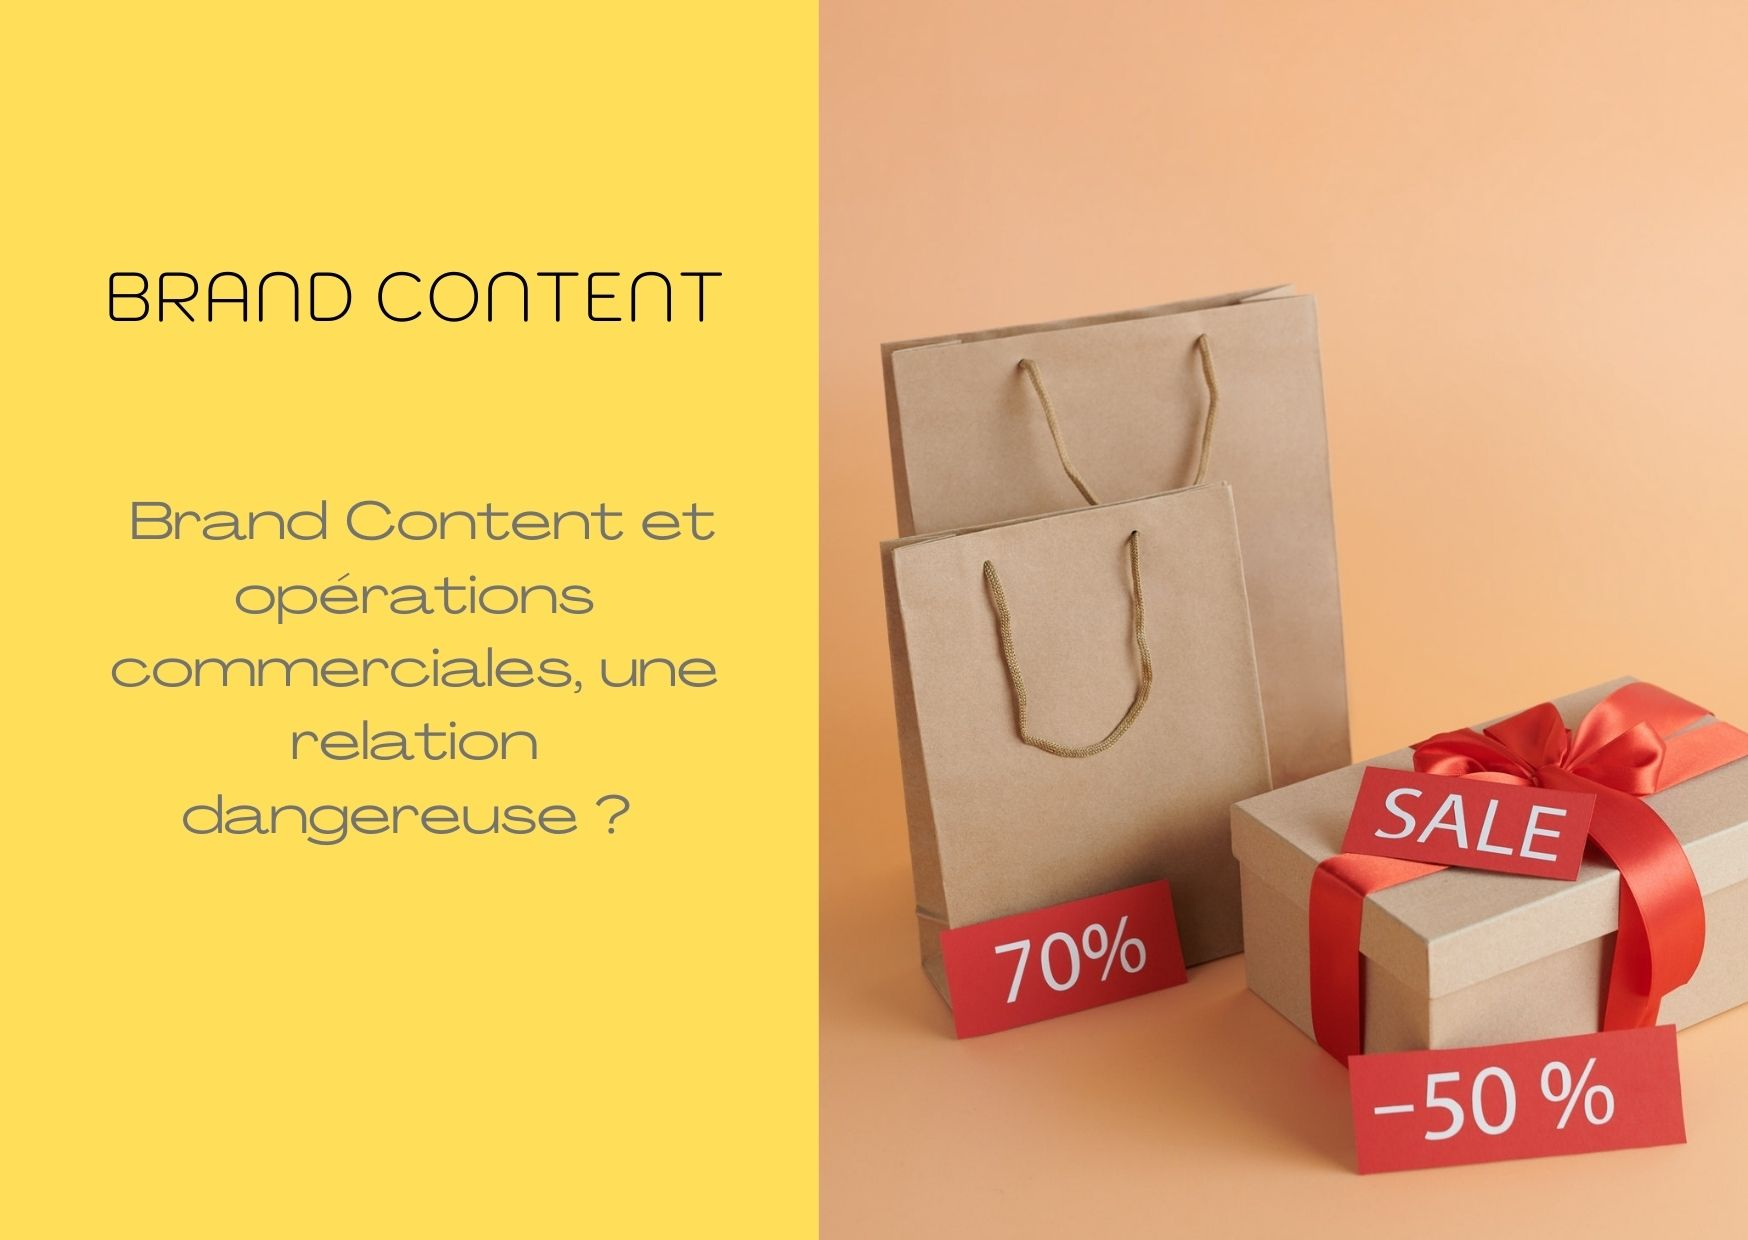 brand-content-et-operations-commerciales